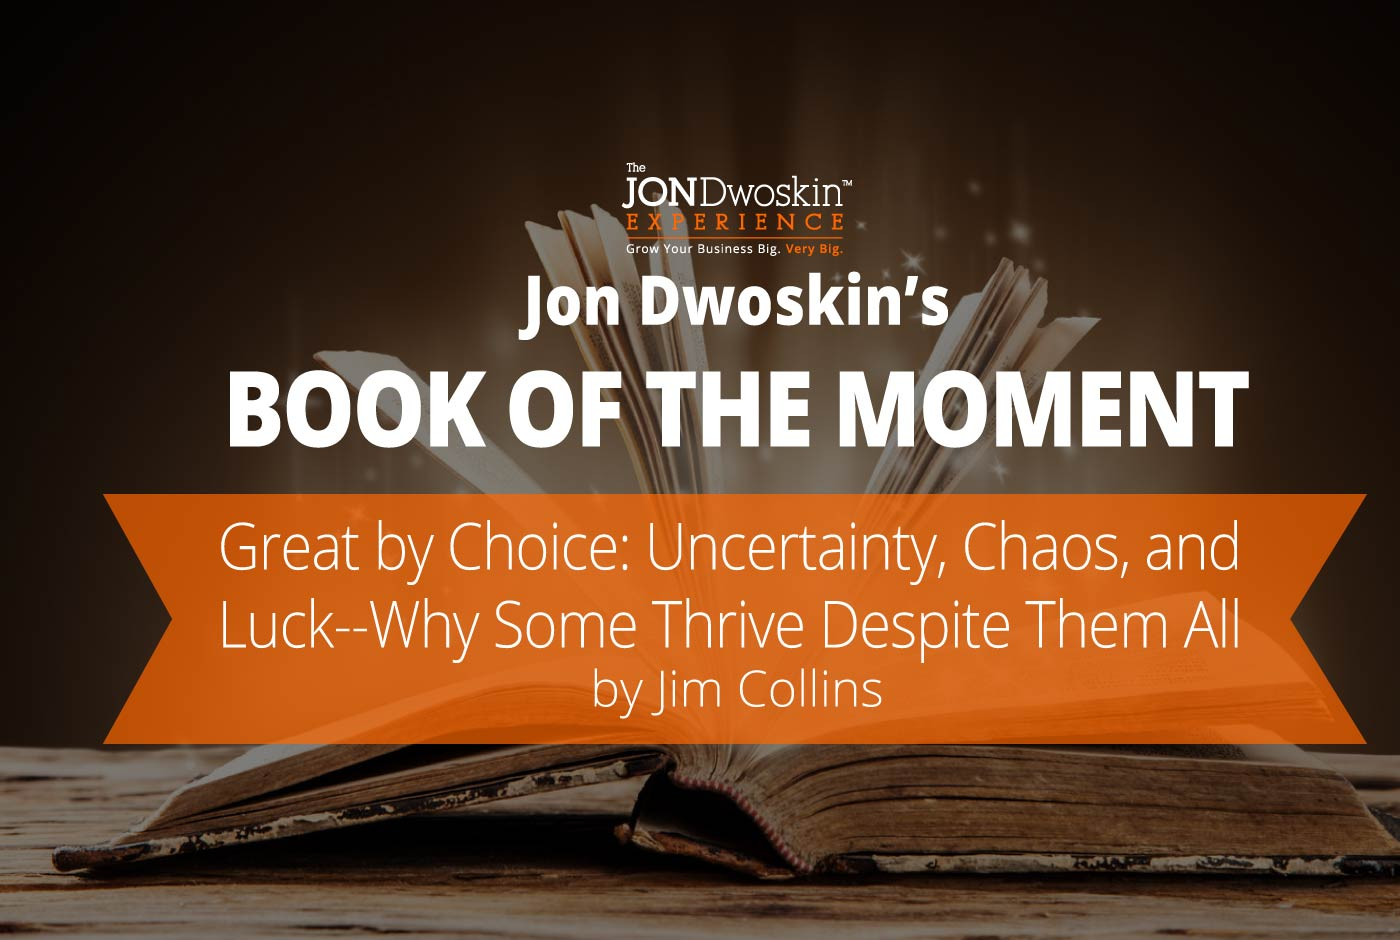 Jon Dwoskin's Book of the Month: Great by Choice